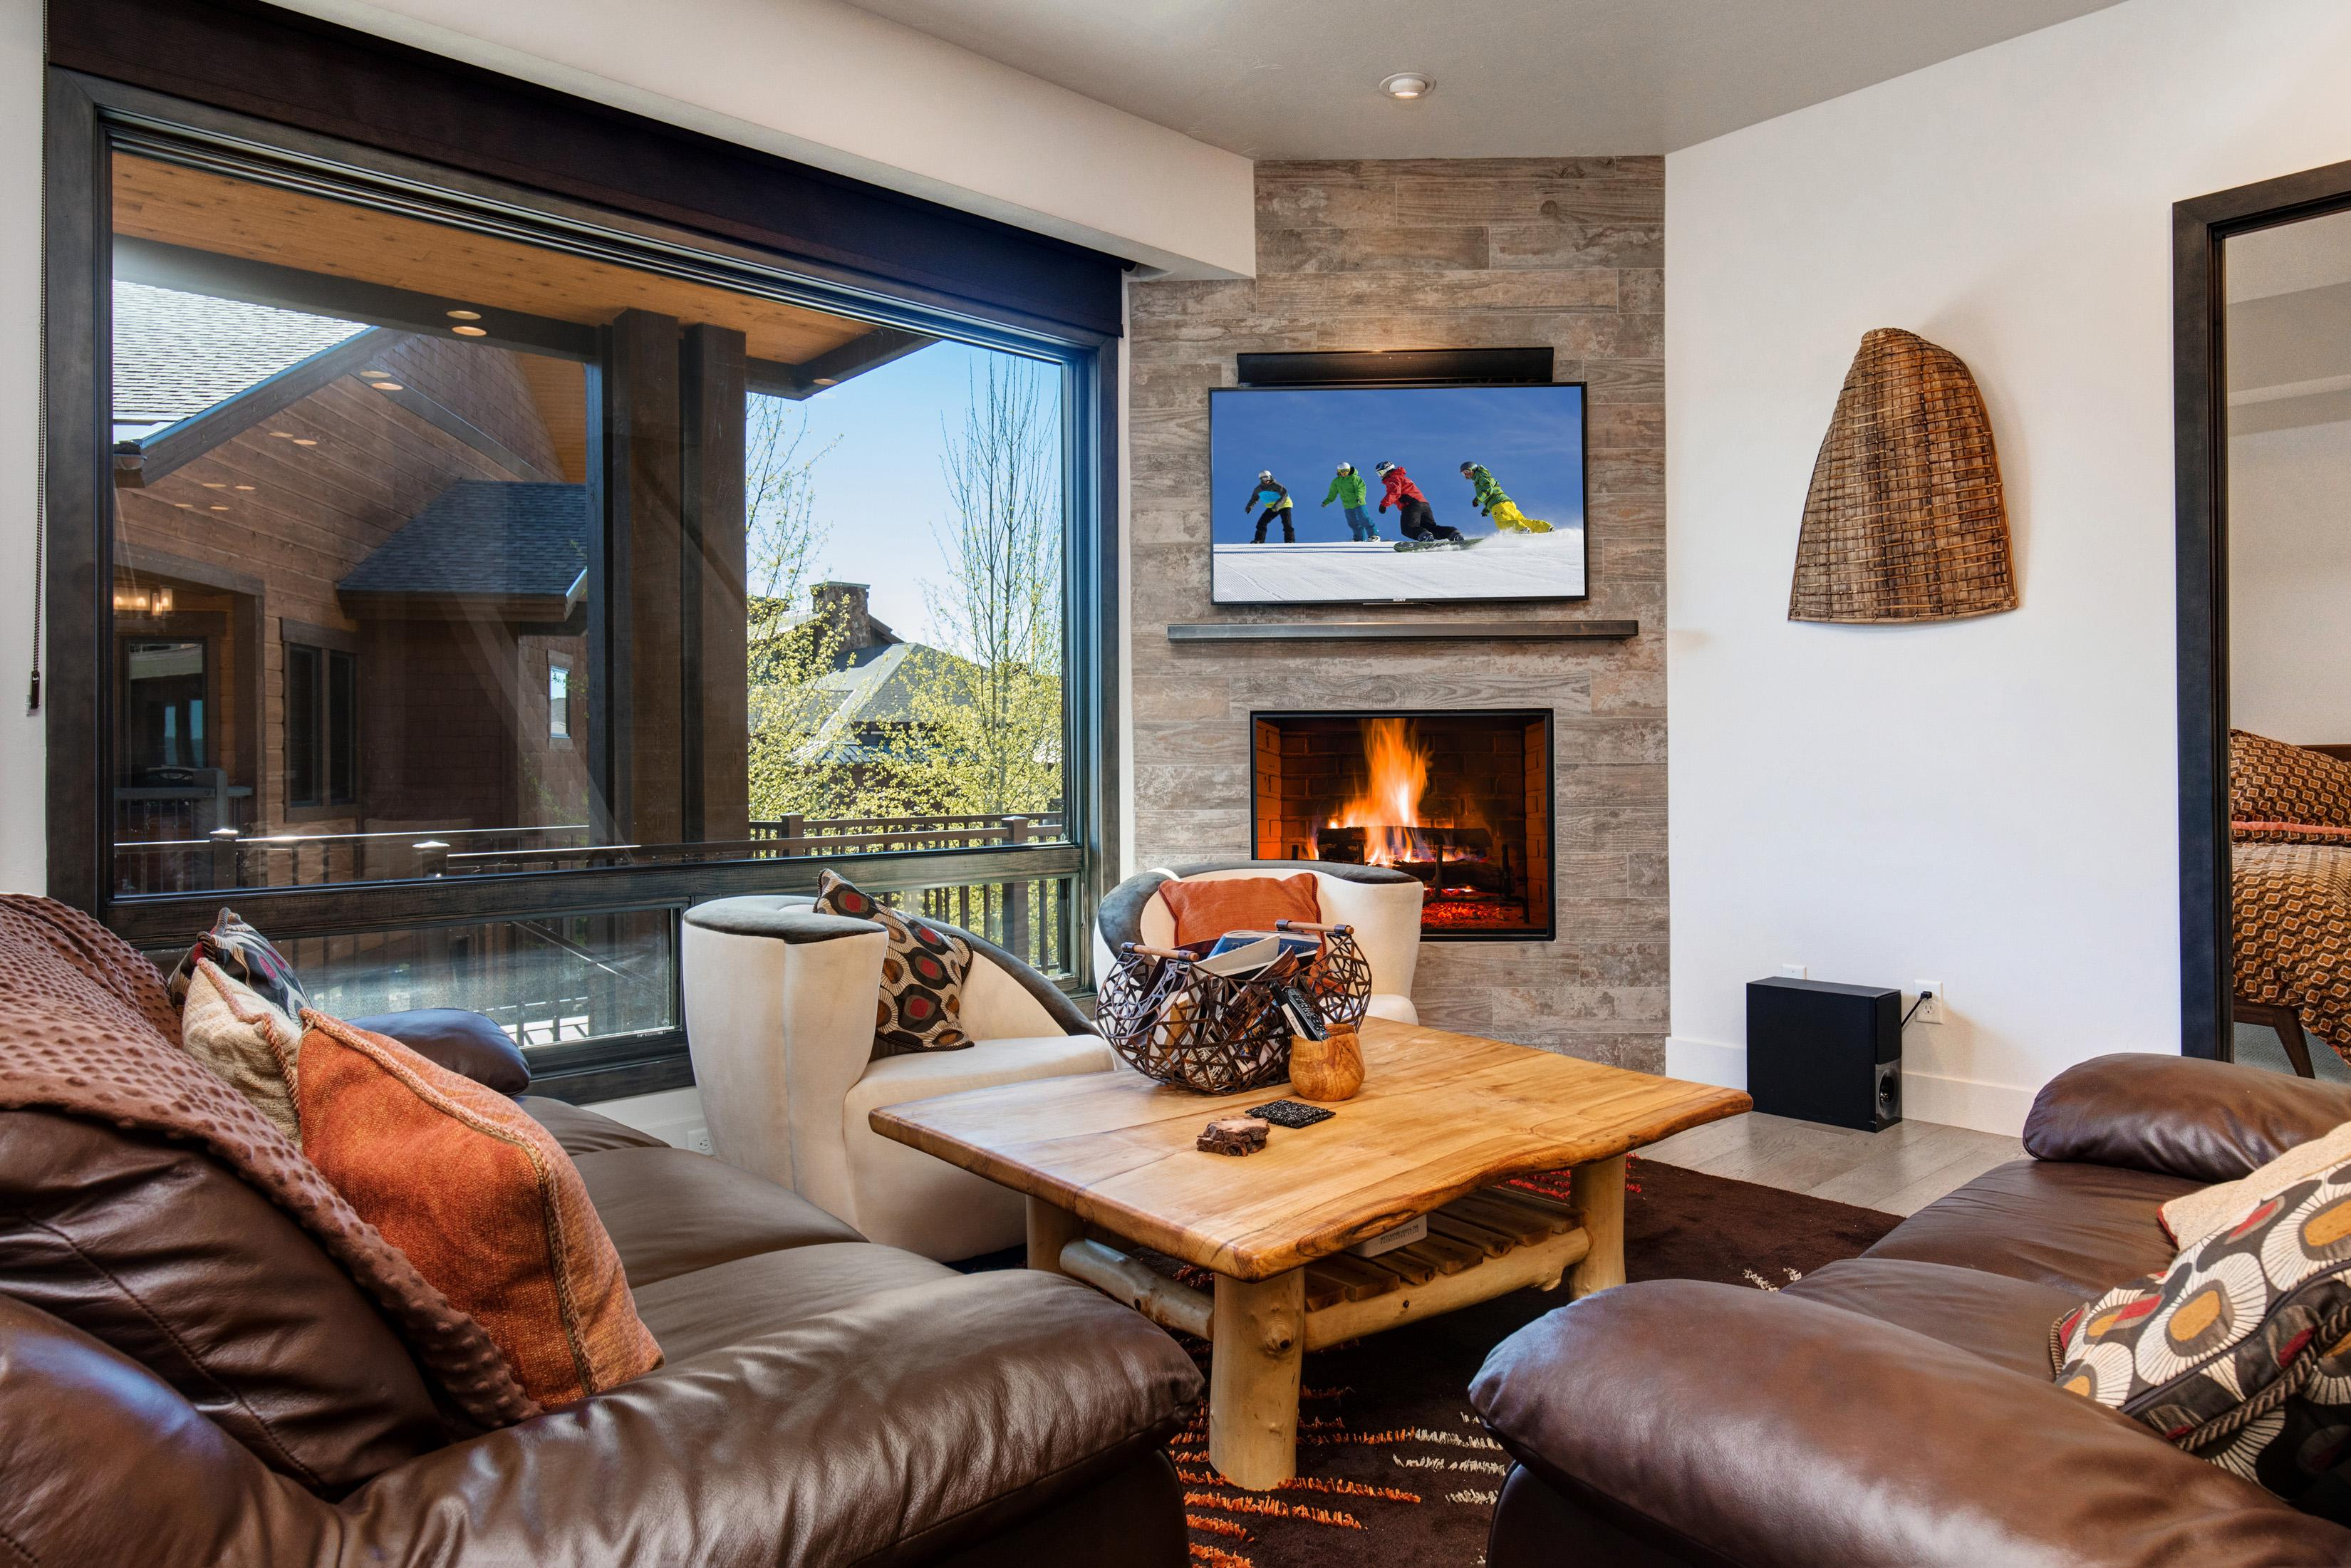 Property Image 2 -  Mountainside Condo with an Upscale Ski Lodge Experience